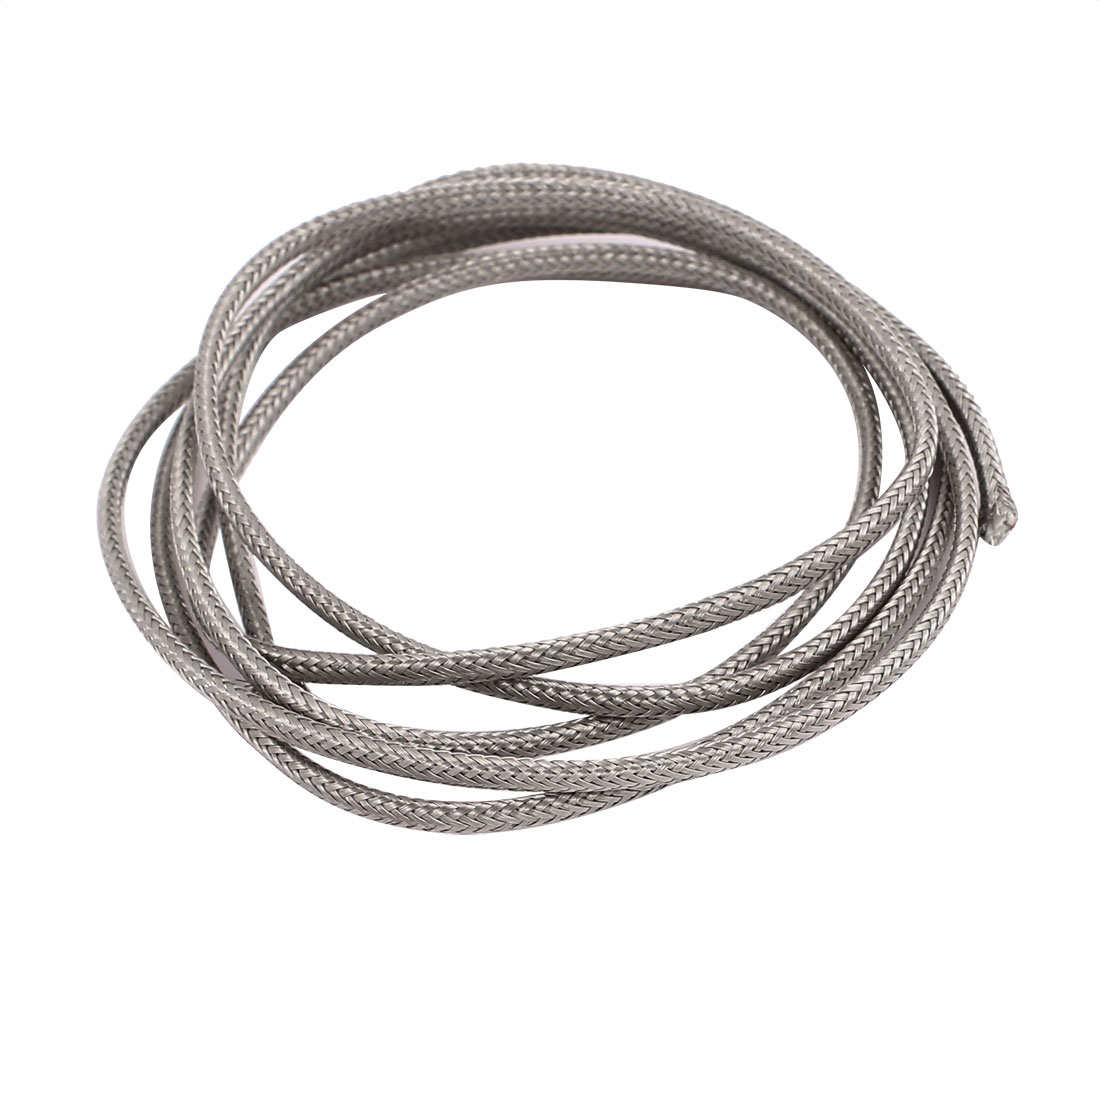 1.1 Meter 0.4mm Width Silver Tone Metal K Type Thermocouple Extension Wire - image 2 of 2